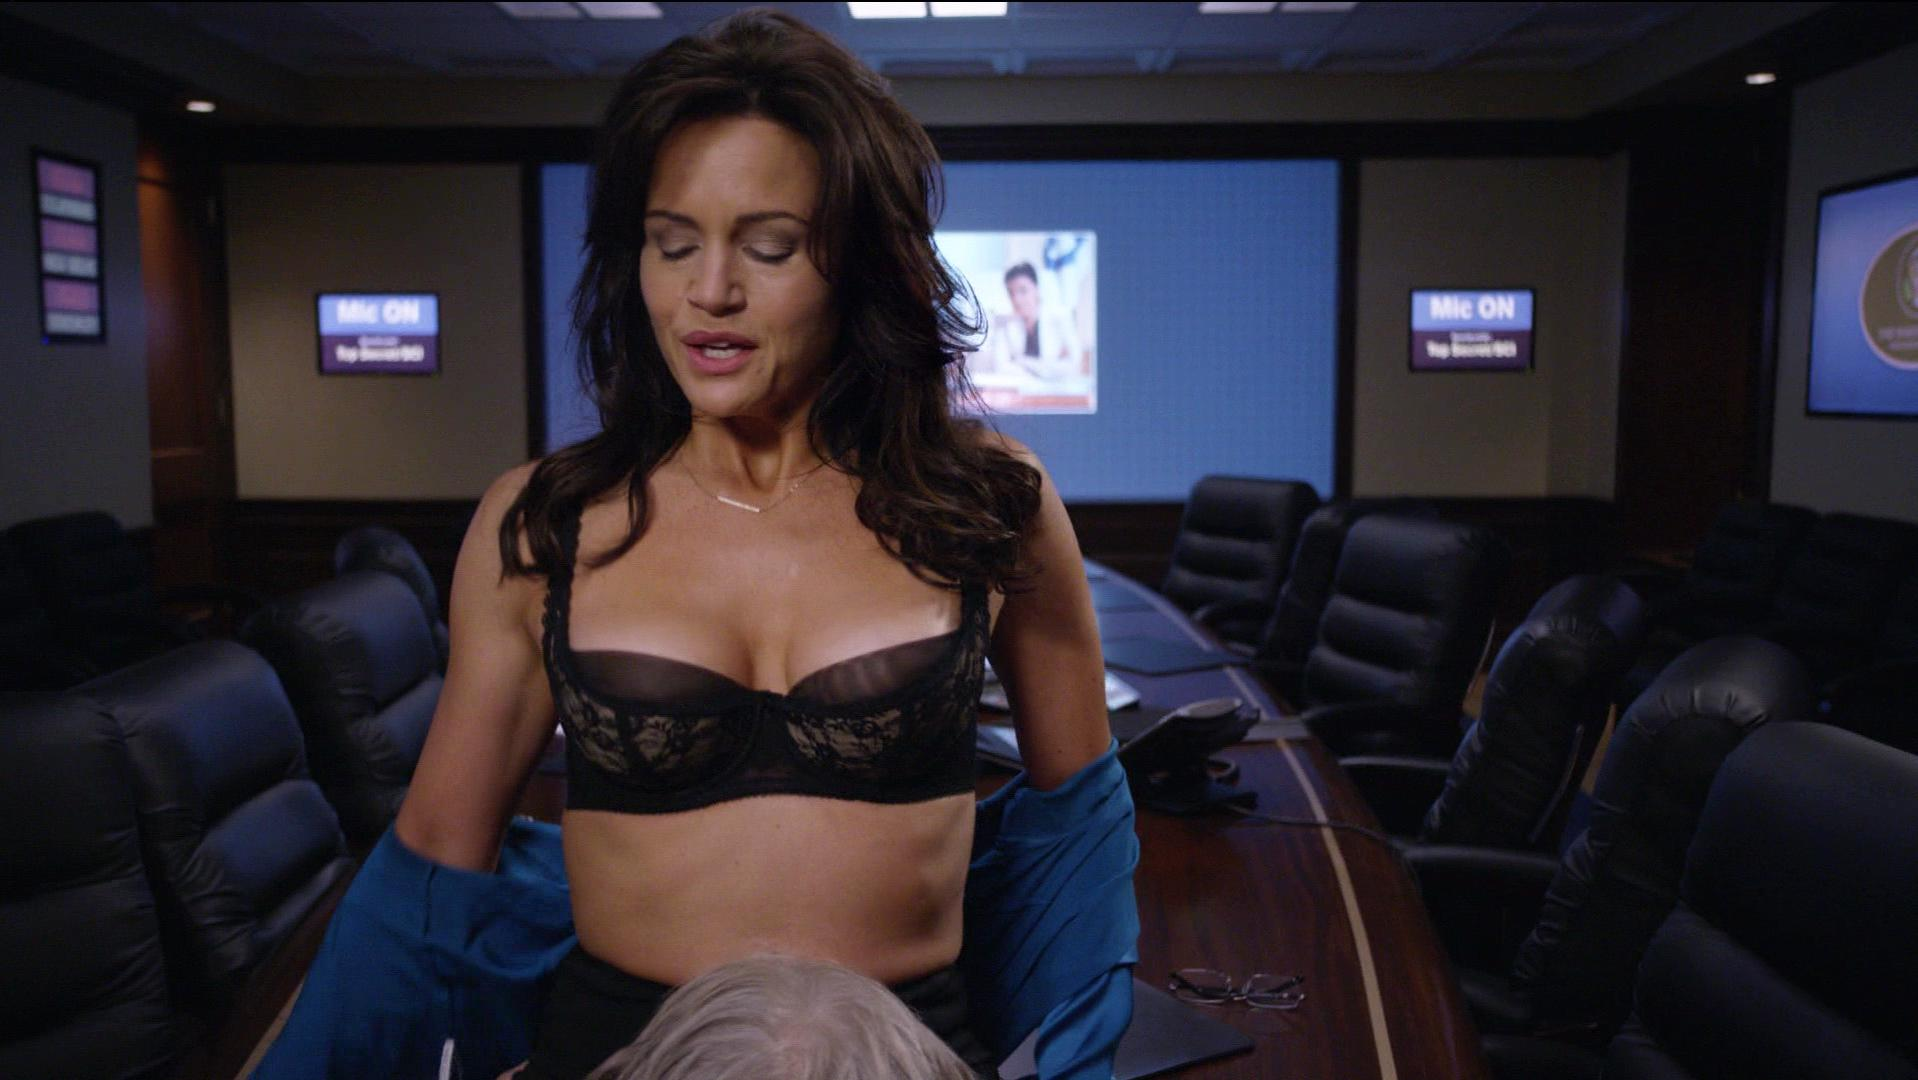 Nude Video Celebs  Carla Gugino Sexy - The Brink S01E10 -3792